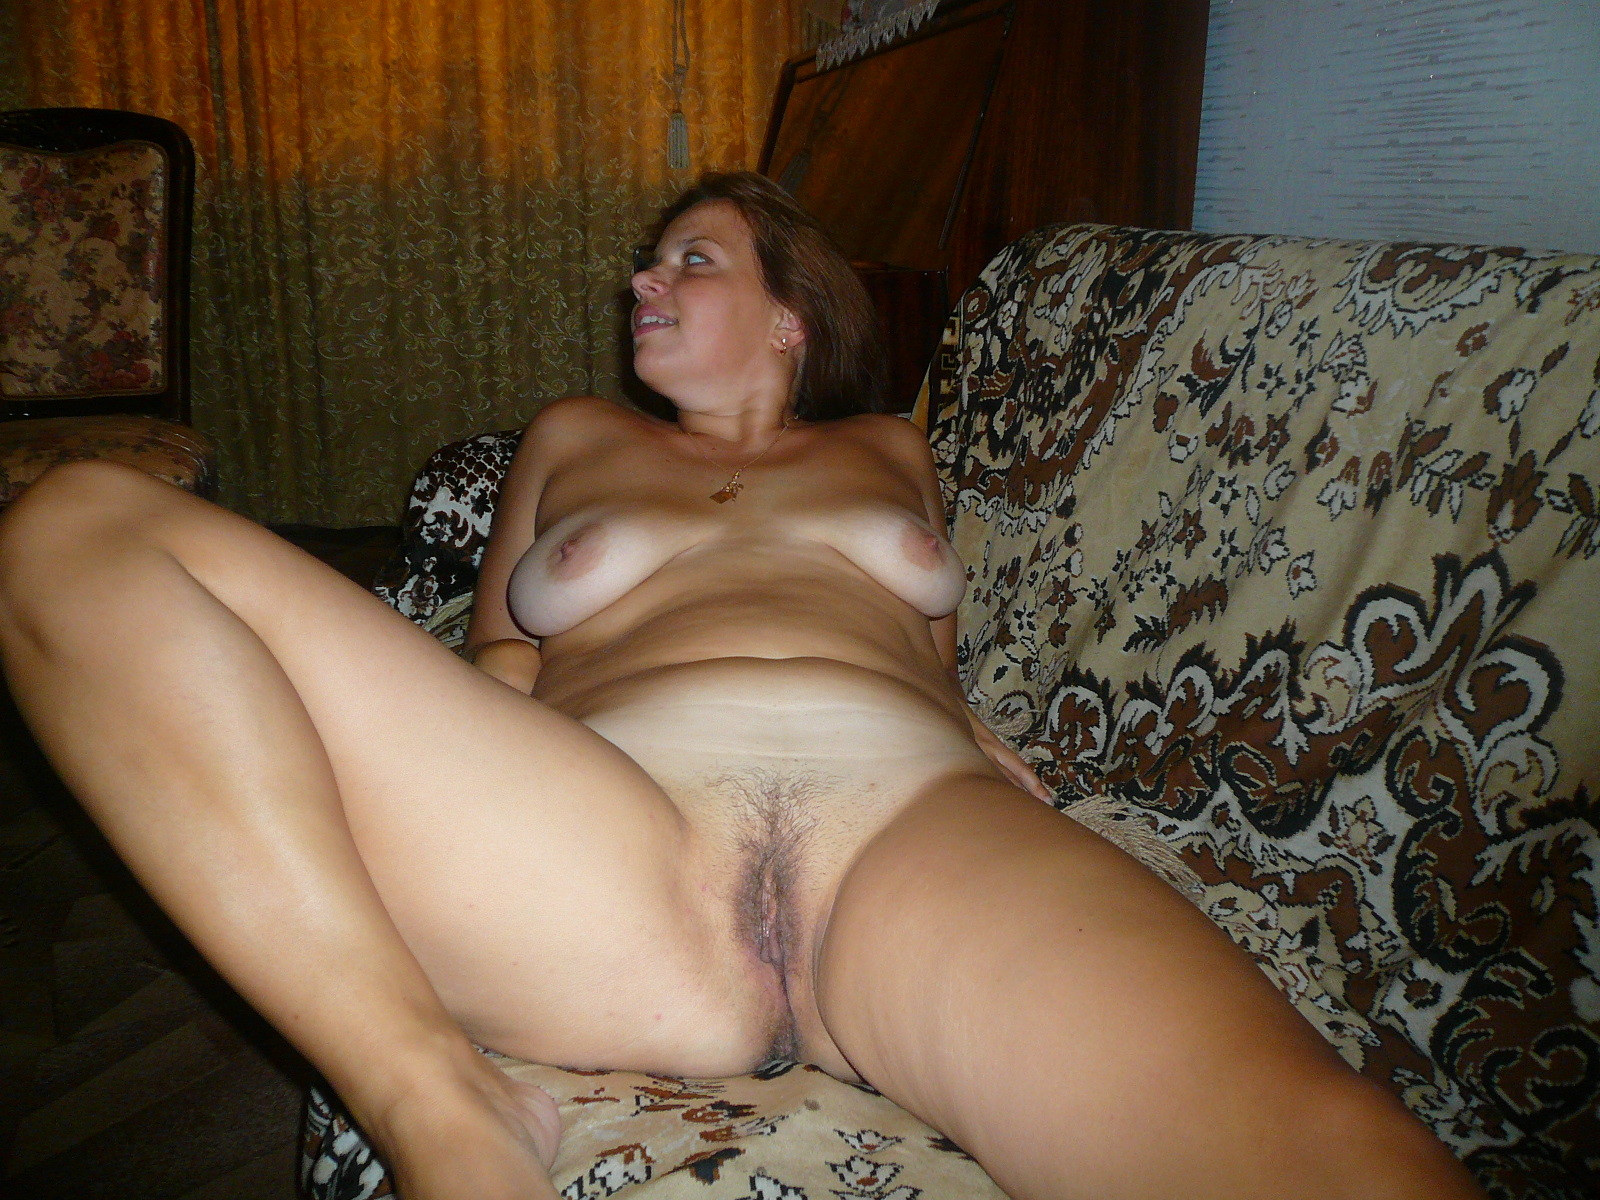 Dianapostcom - the mature galleries, mom galleries,old